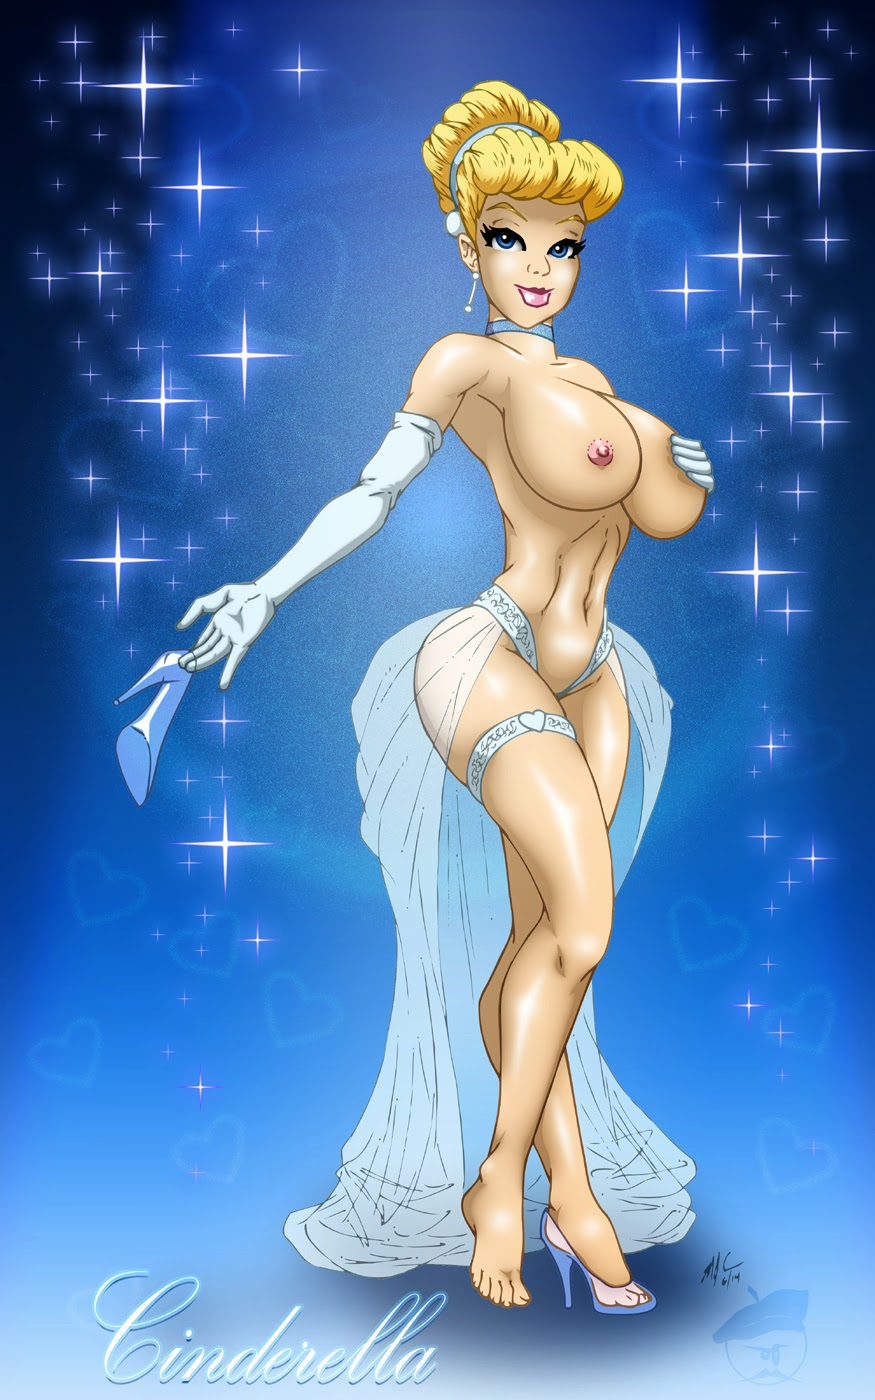 Shemale Morph Blogs - Cinderella Disney Perfects Fairy Tale Porn - Perfect Girls ...